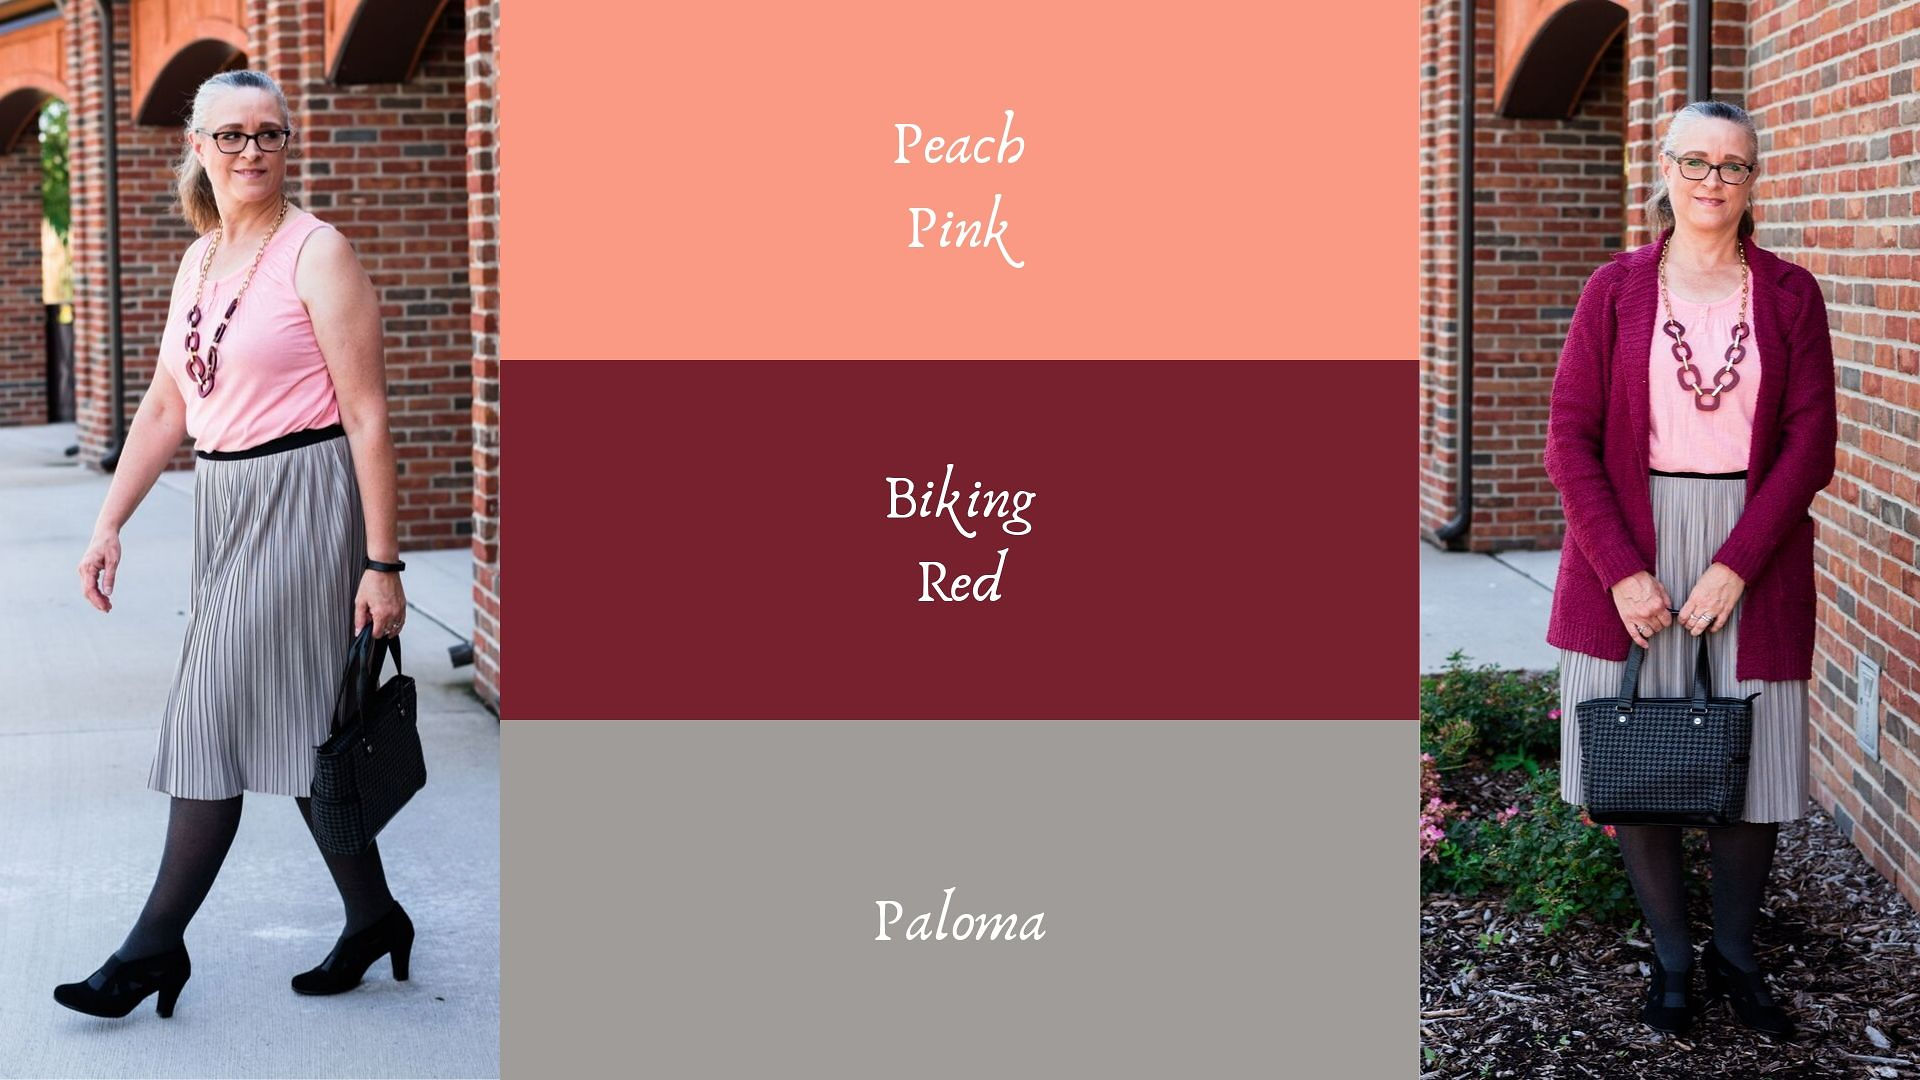 Pantone - Autumn/Winter - 2019 - Peach Pink and Biking Red